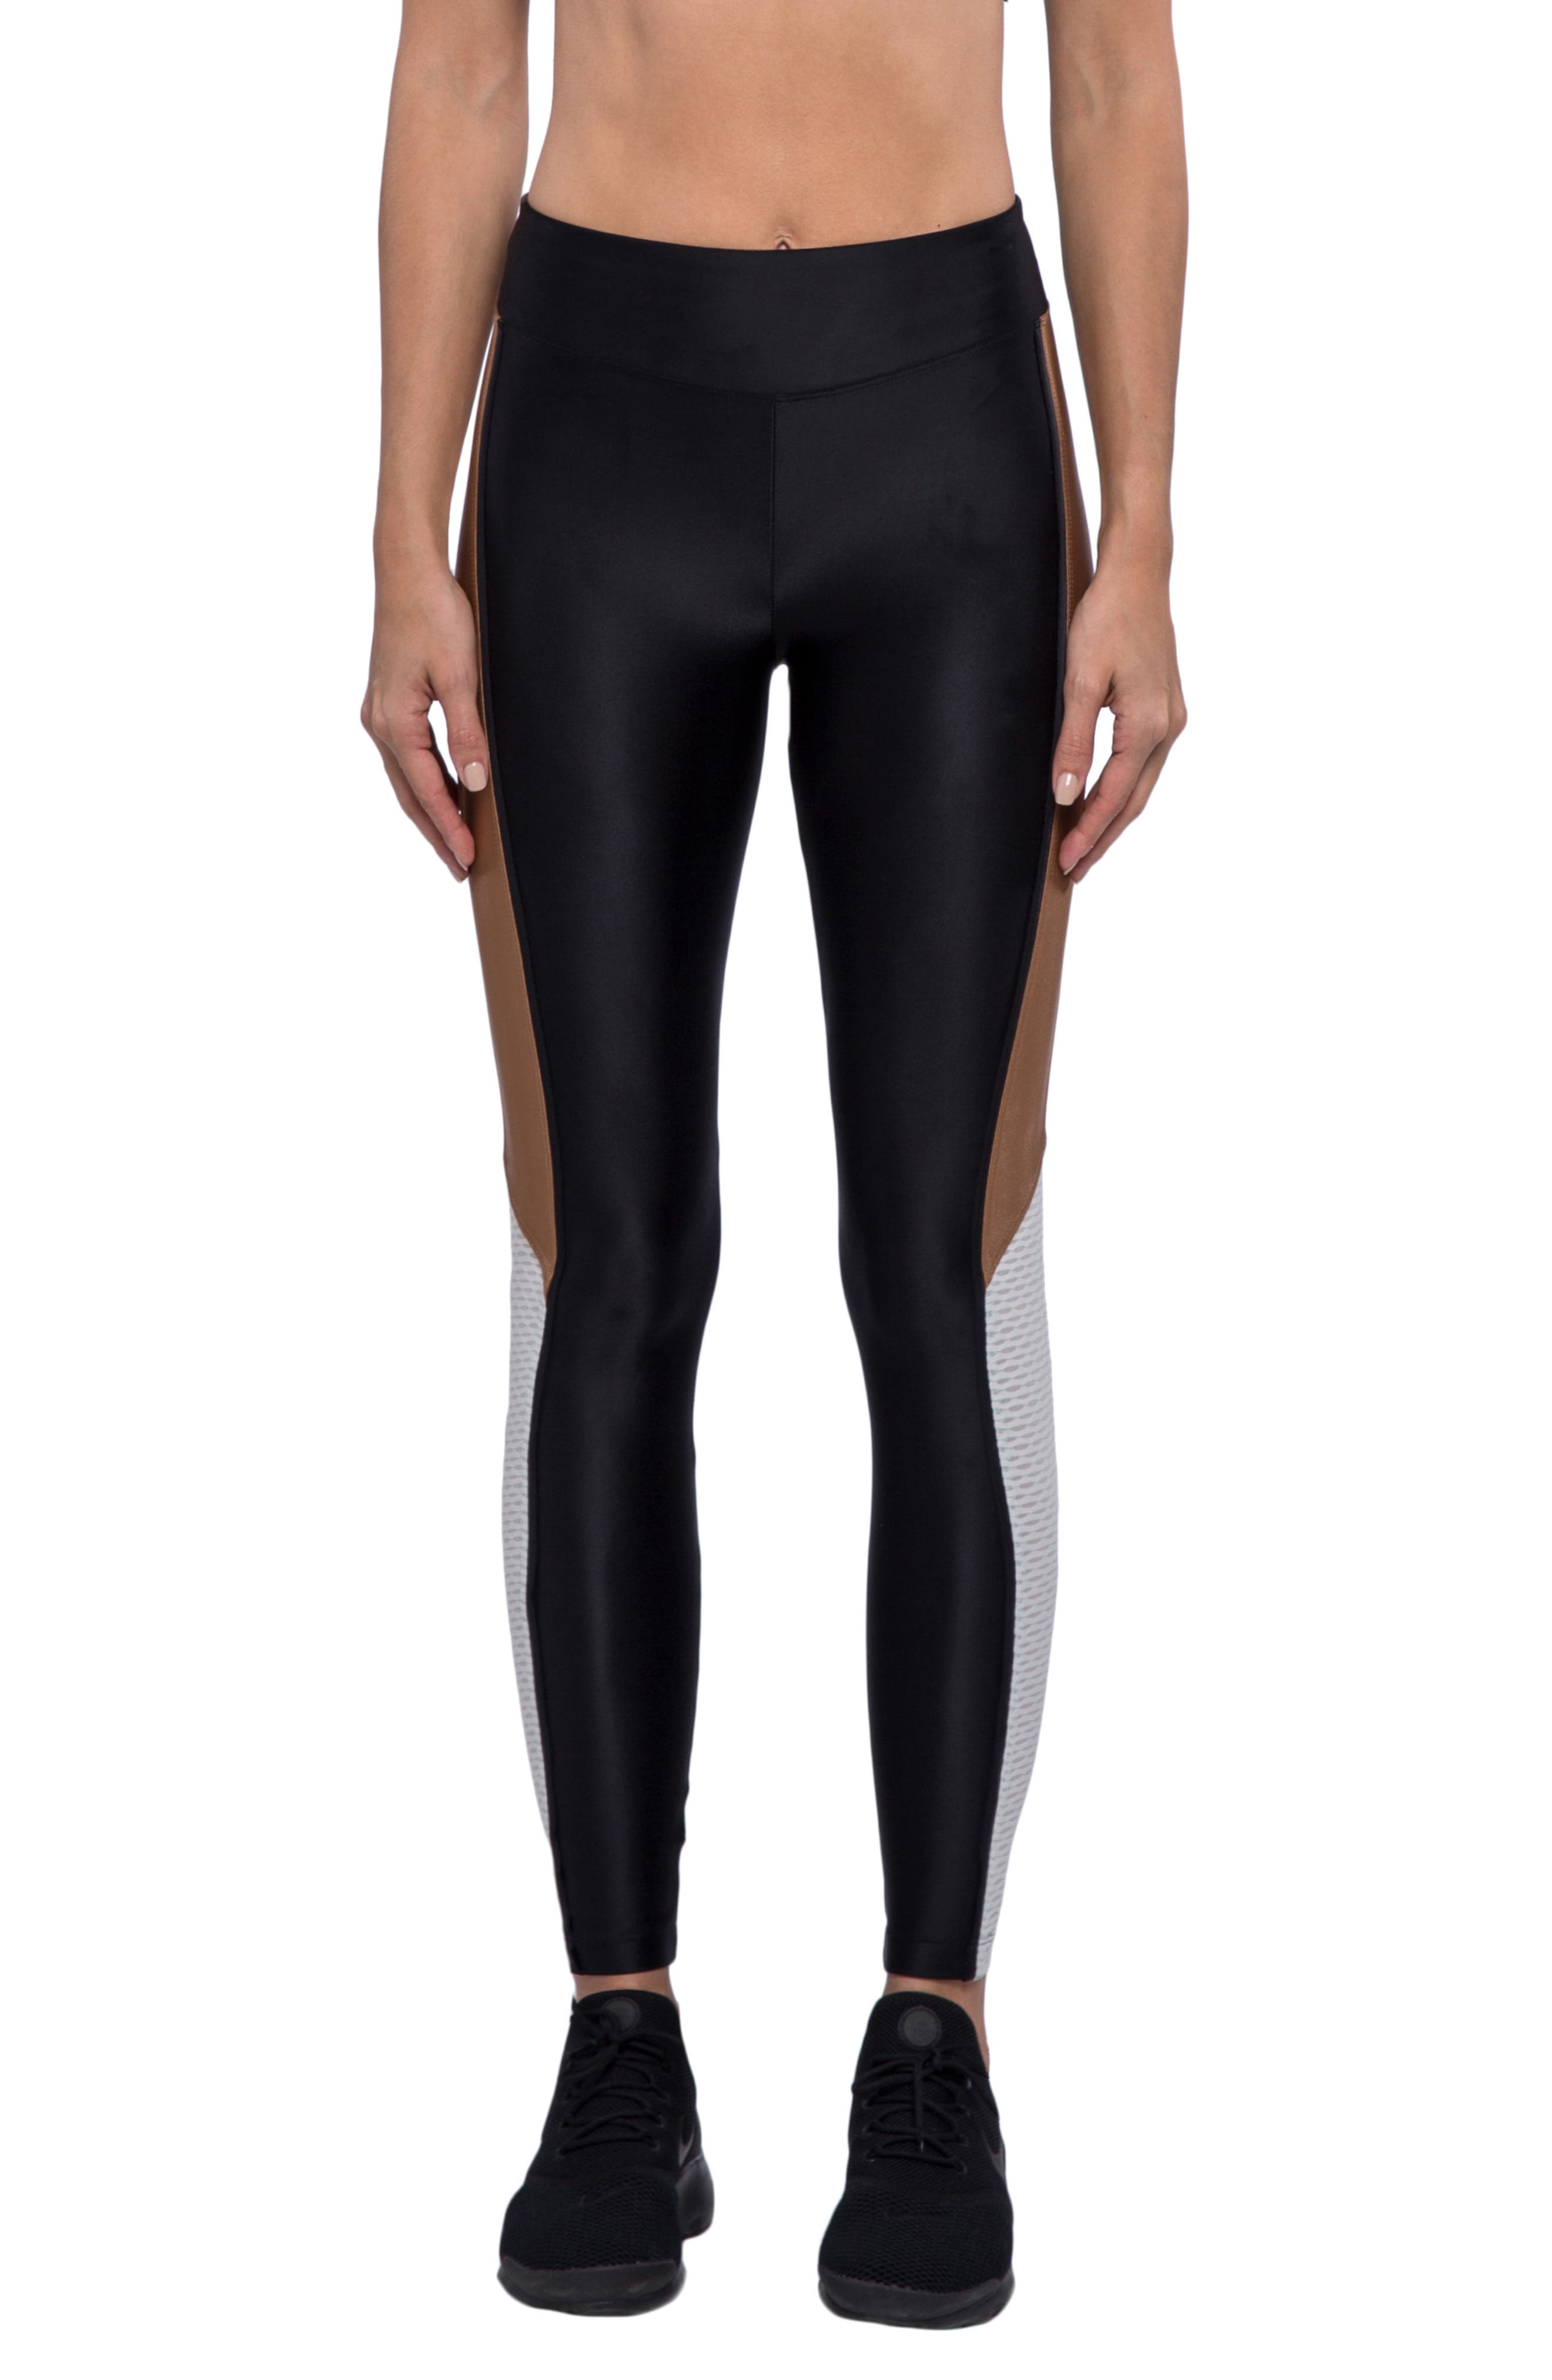 Serendipity Energy Leggings,                             Main thumbnail 1, color,                             BLACK/ TOFFEE/ EGRET